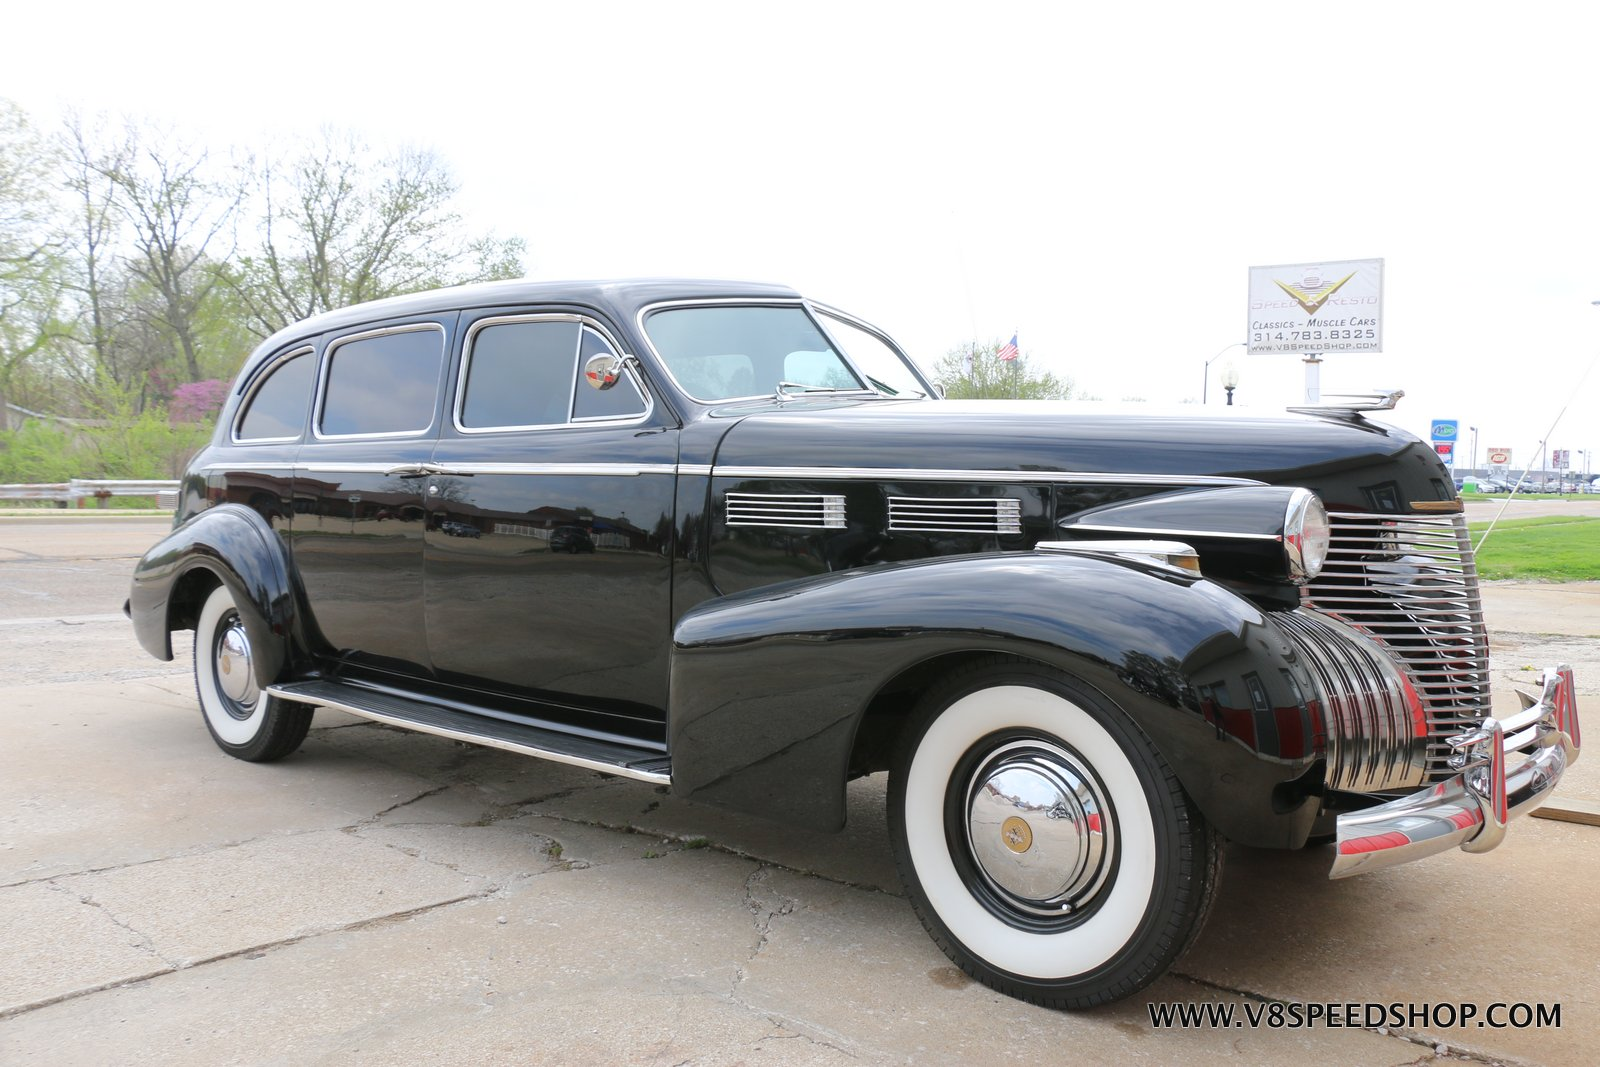 1940 Cadillac Fleetwood Limousine Photo Gallery at V8 Speed & Resto Shop